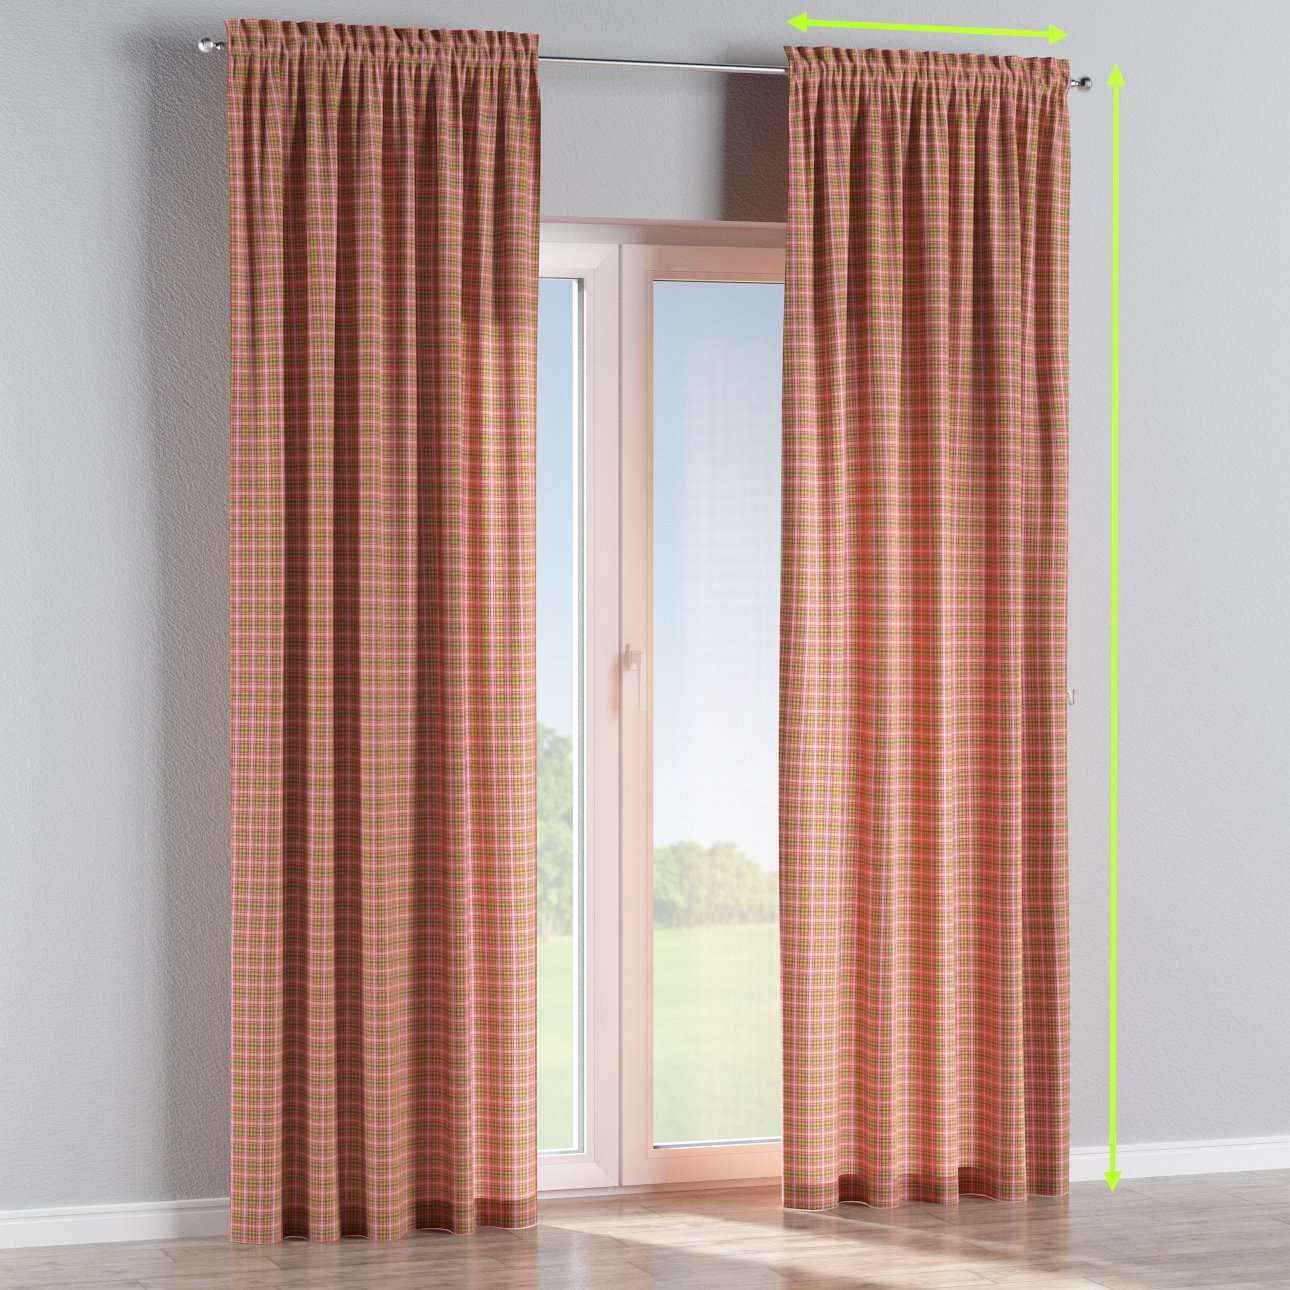 Slot and frill lined curtains in collection Bristol, fabric: 126-25